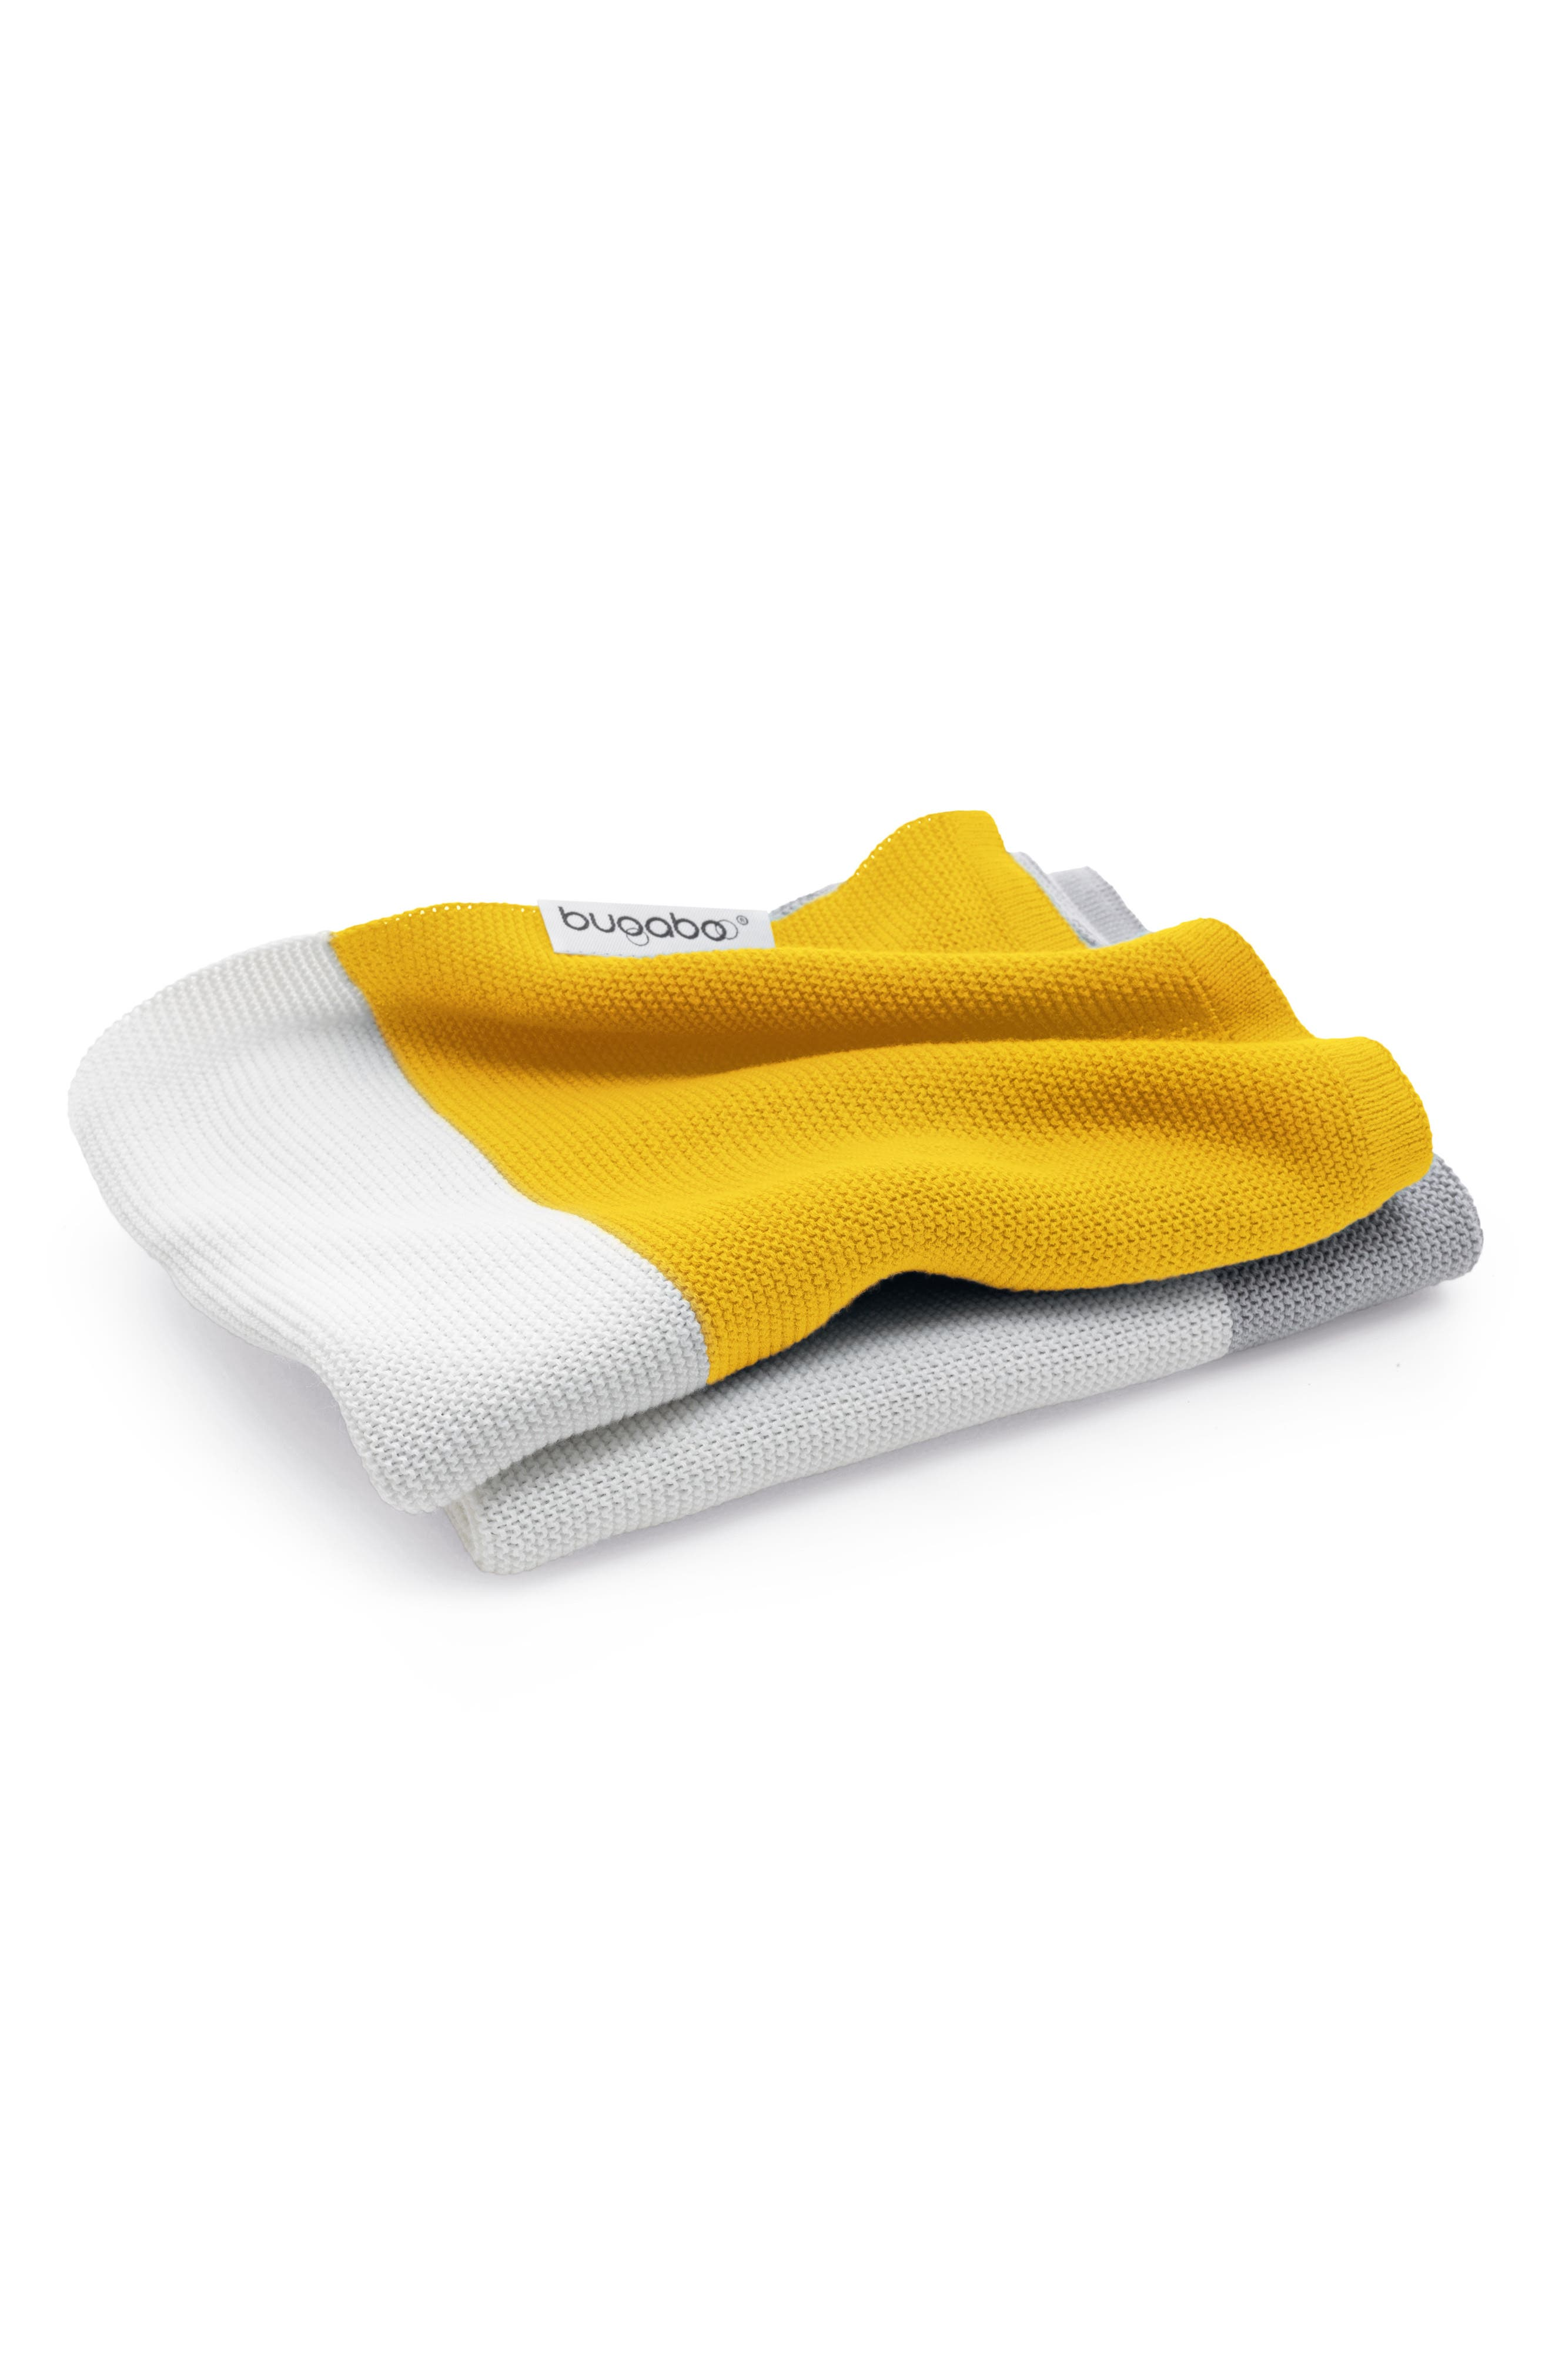 Light Cotton Blanket,                         Main,                         color, Bright Yellow